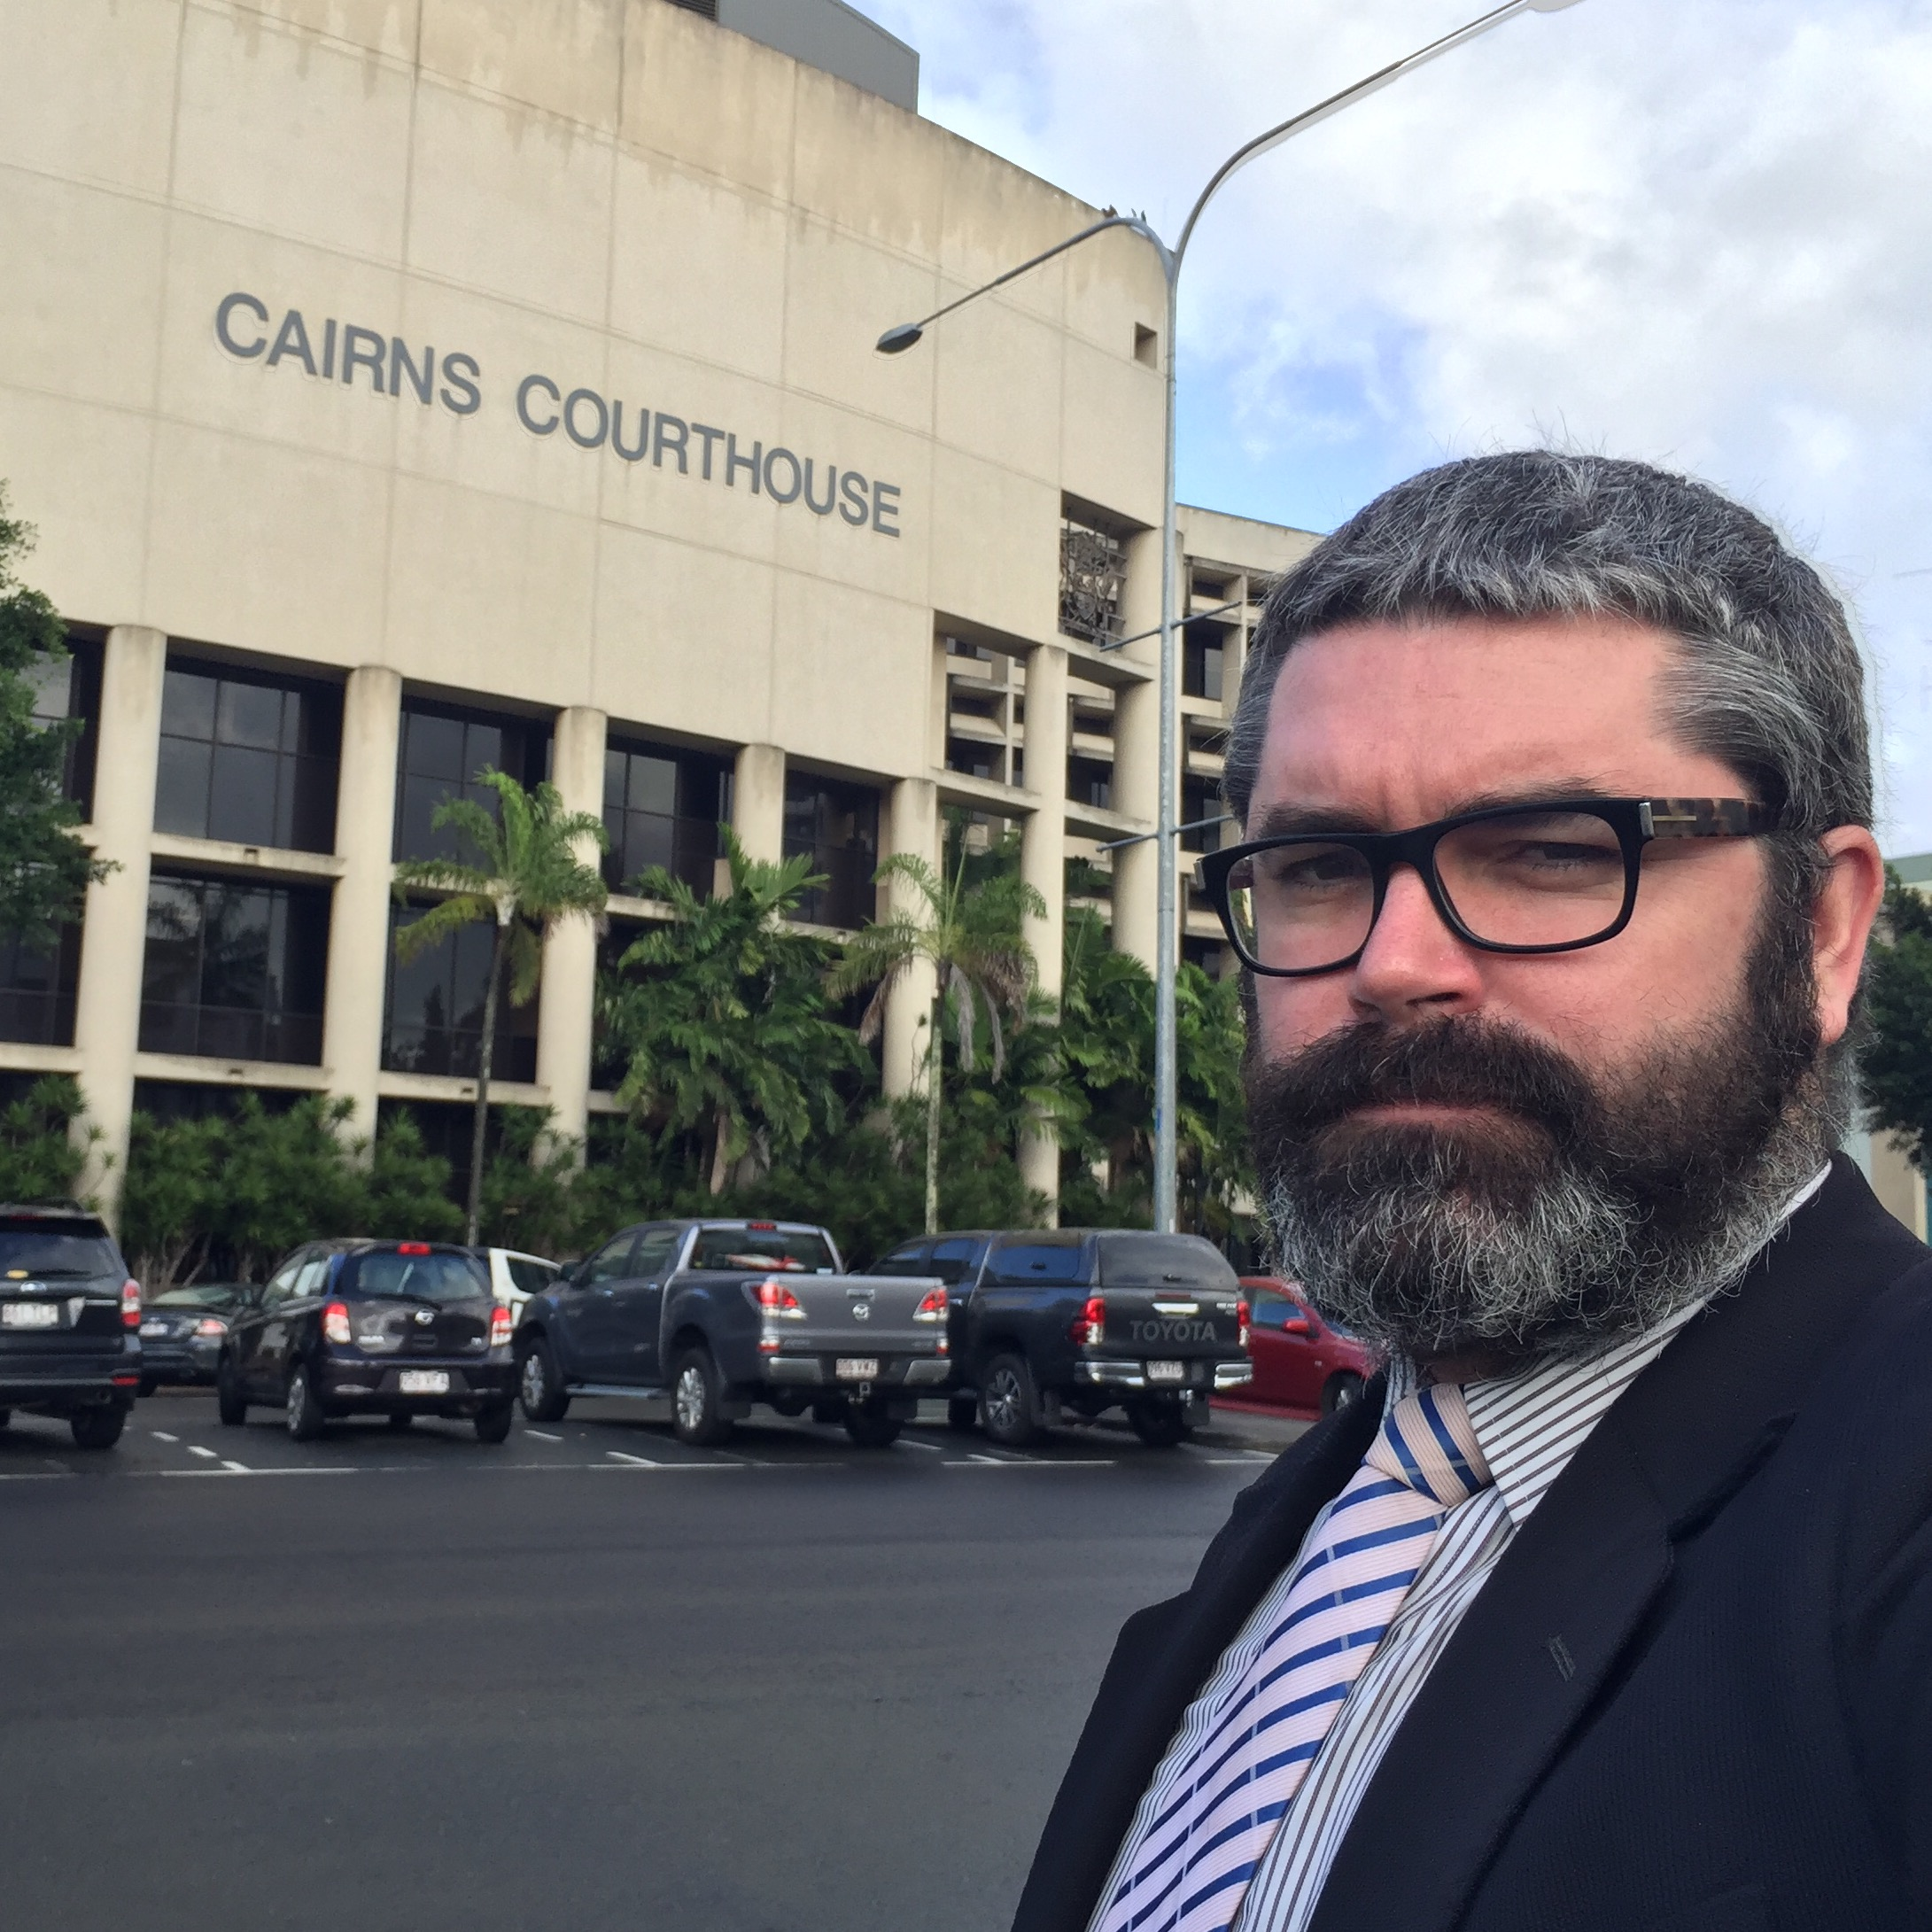 Cairns DUI Drink Driving Drug Driving Lawyer